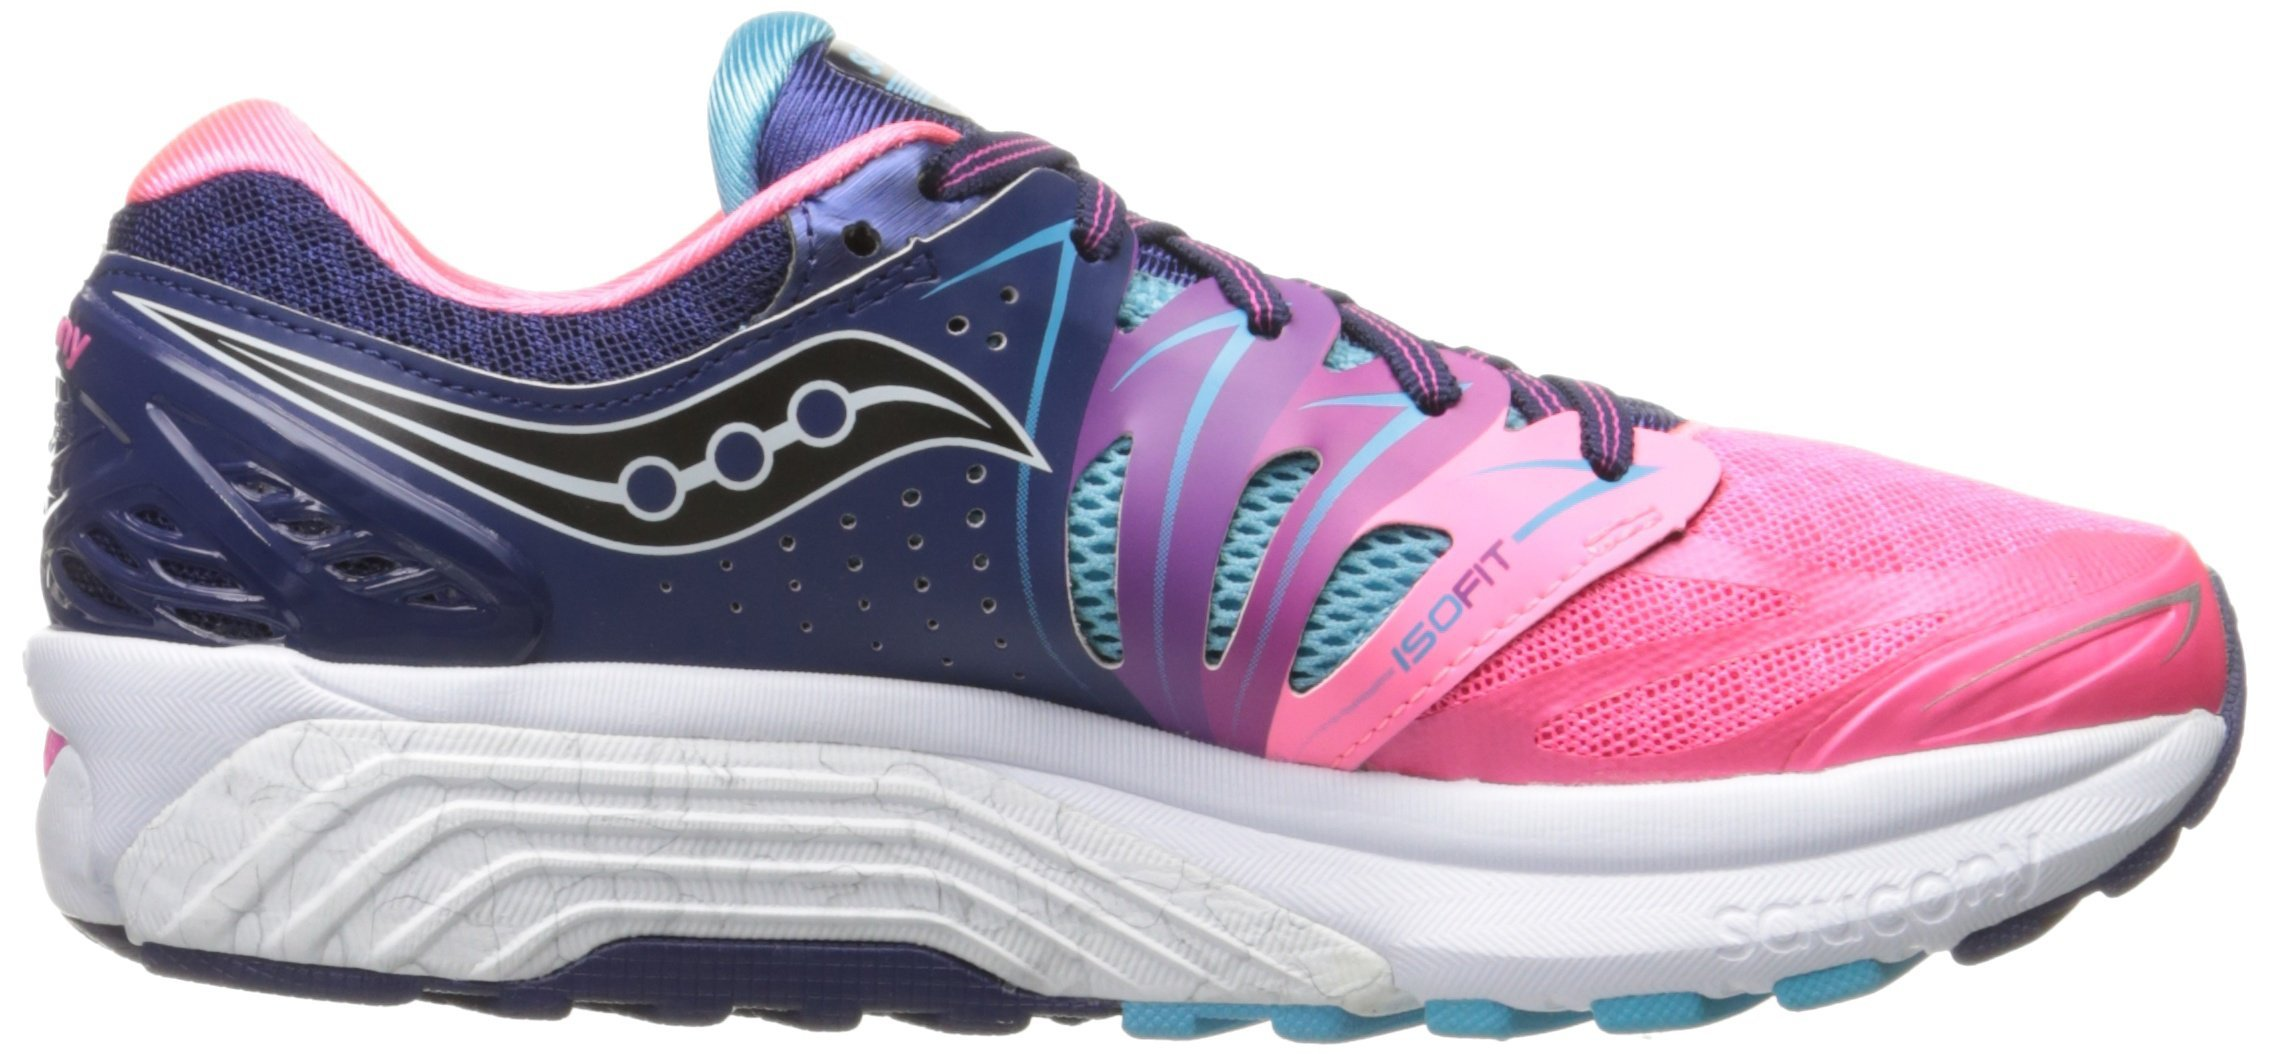 Saucony Women's Hurricane ISO 2 Running Shoe, Blue/Pink, 8 M US by Saucony (Image #5)